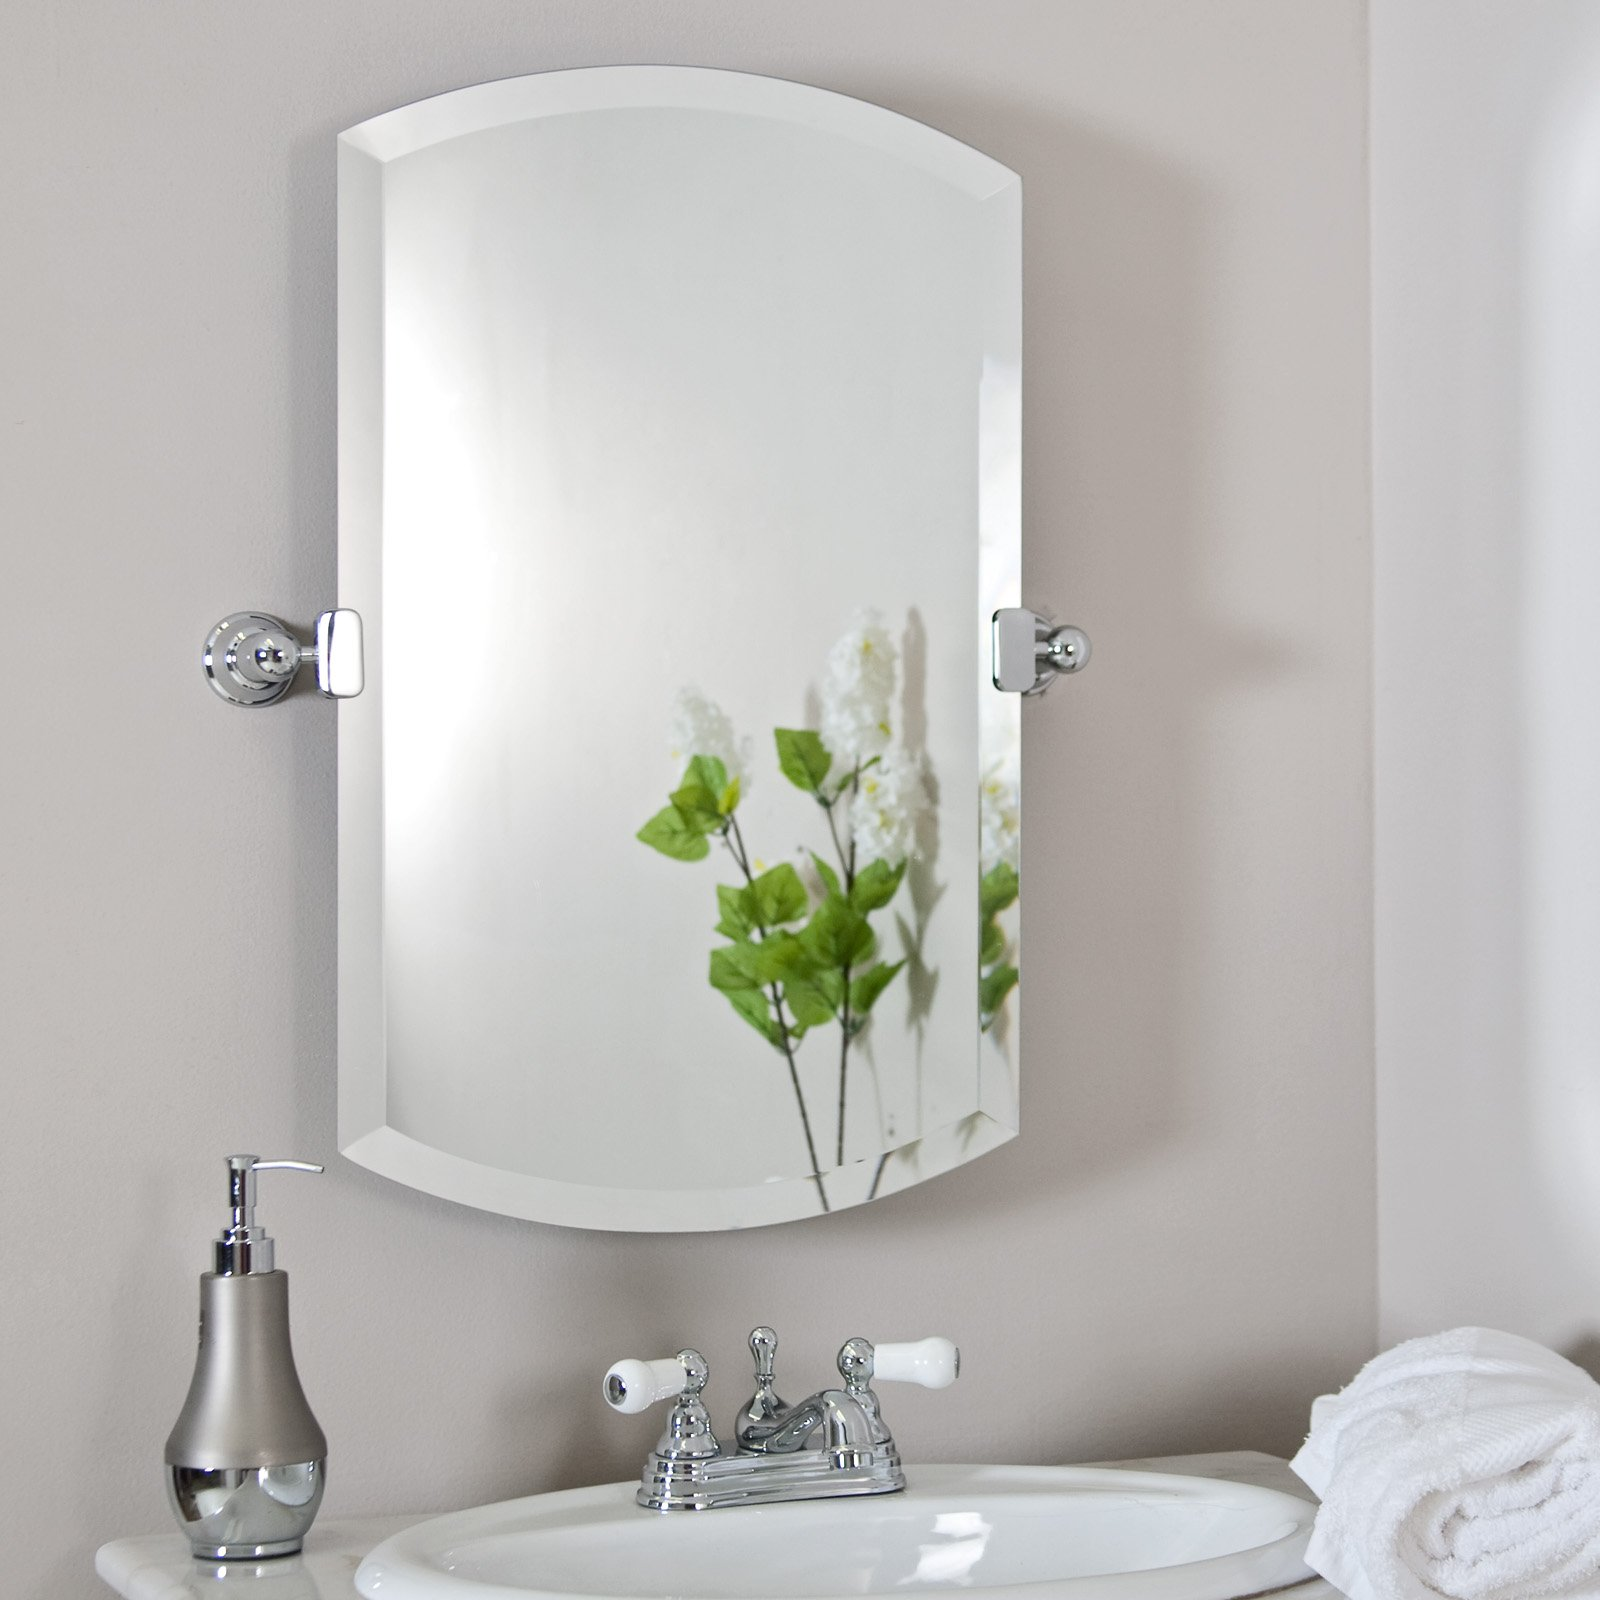 Modern bathroom mirrors - Mirror Bathroom Mirror For Bathroom